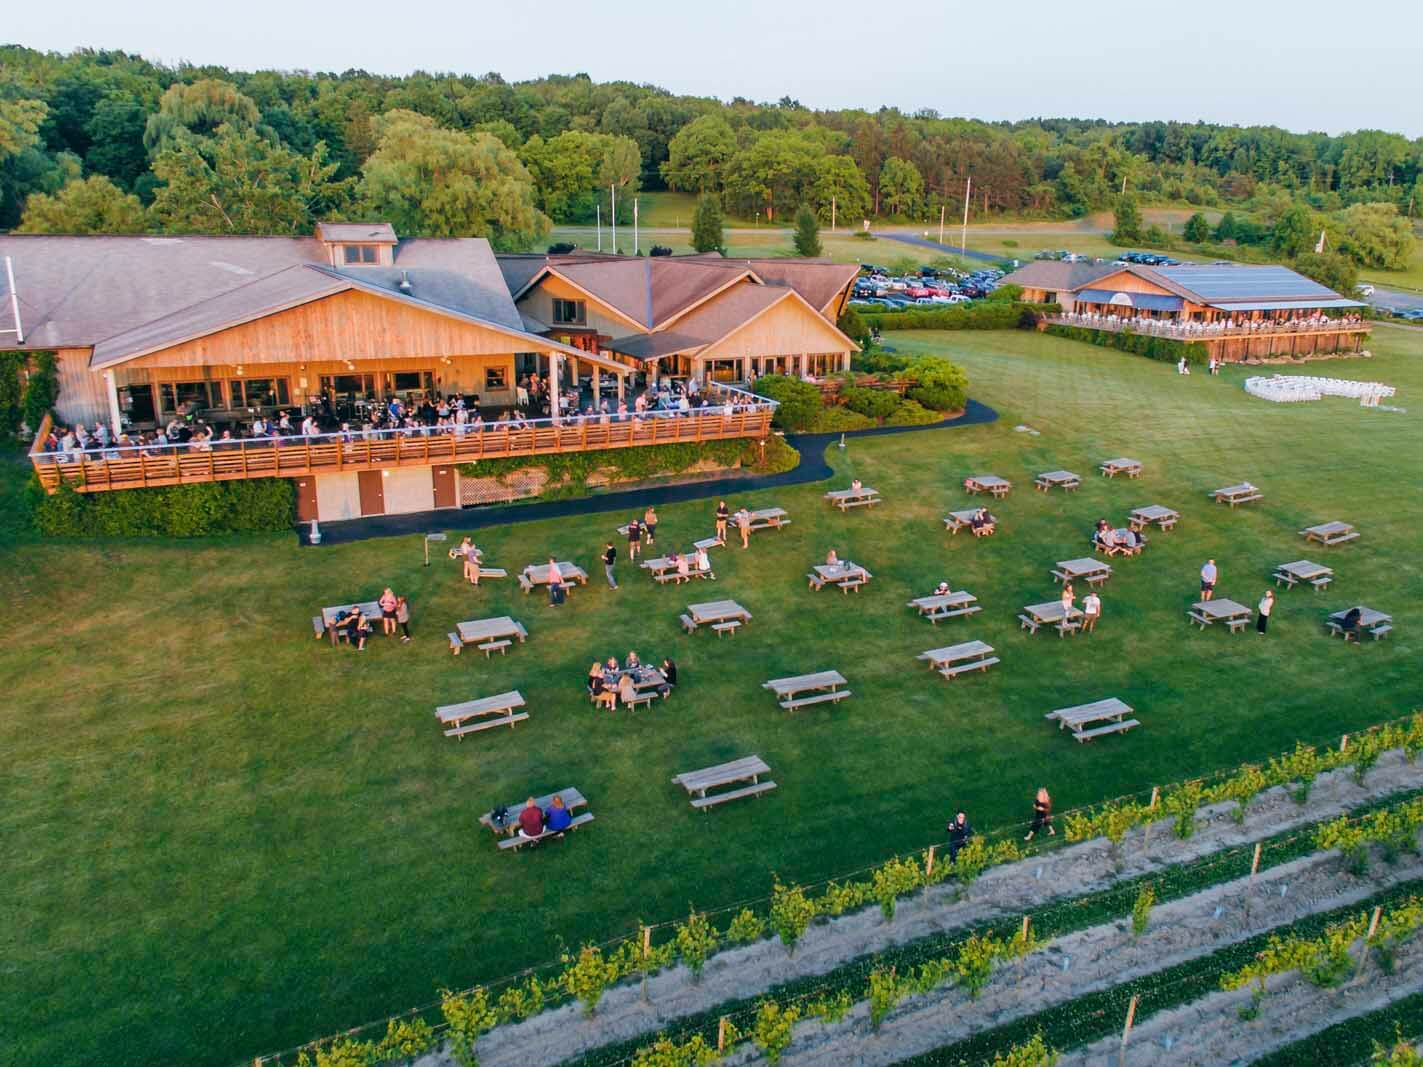 Wagner Vineyards on Friday evening in the Finger Lakes